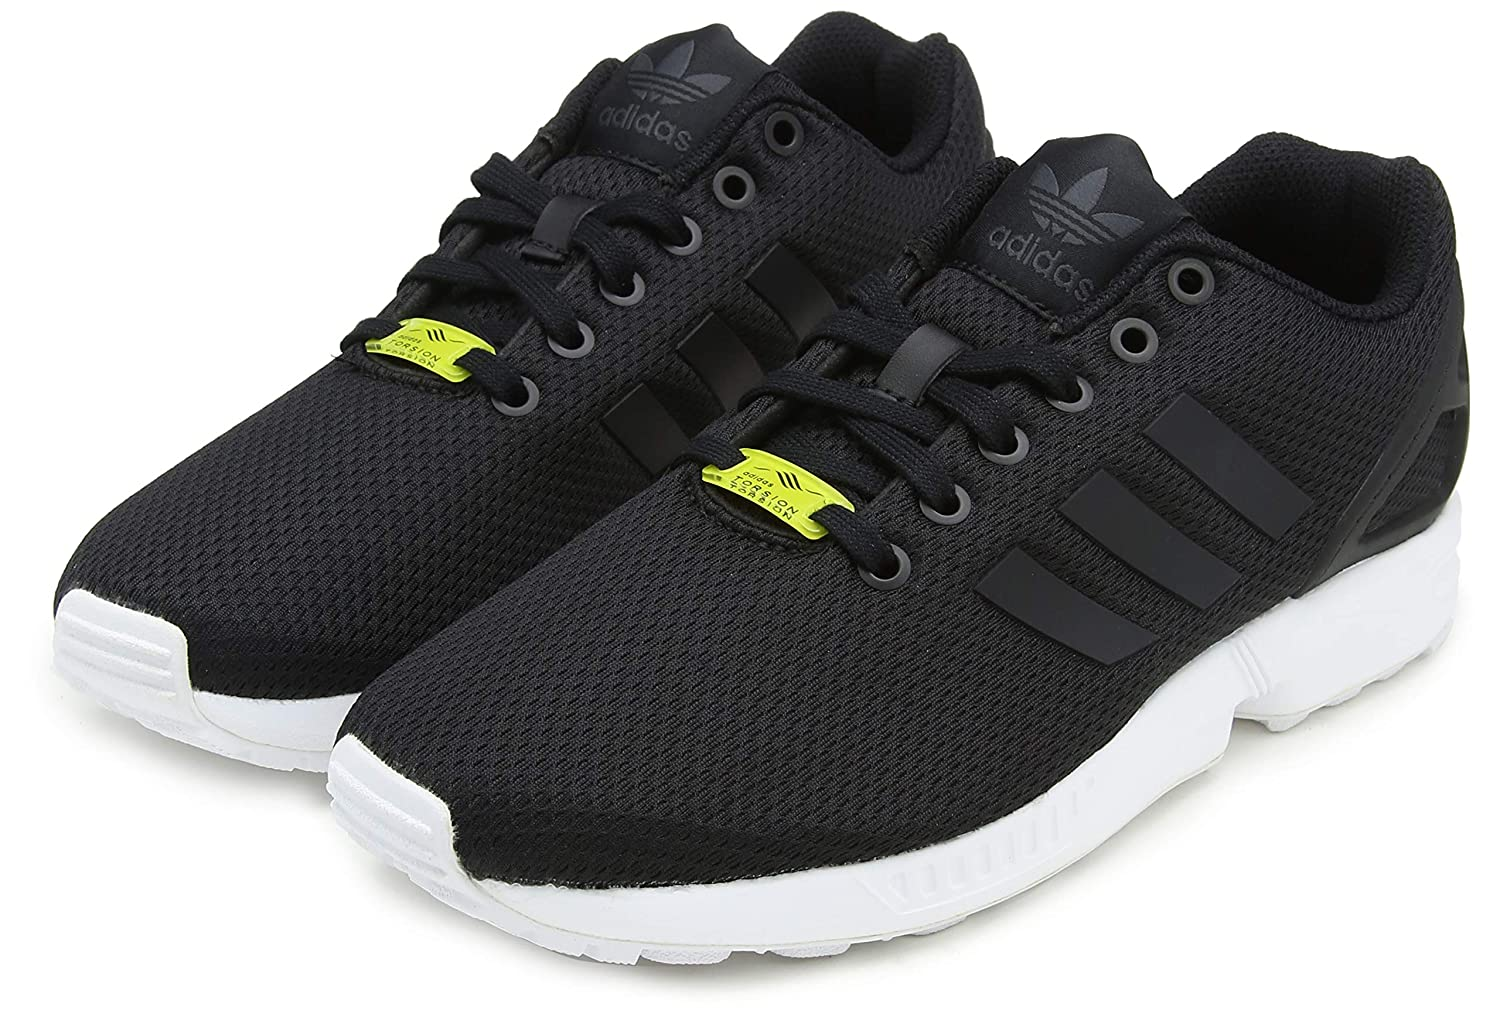 40caf8ab2 Adidas ZX Flux  Amazon.co.uk  Shoes   Bags